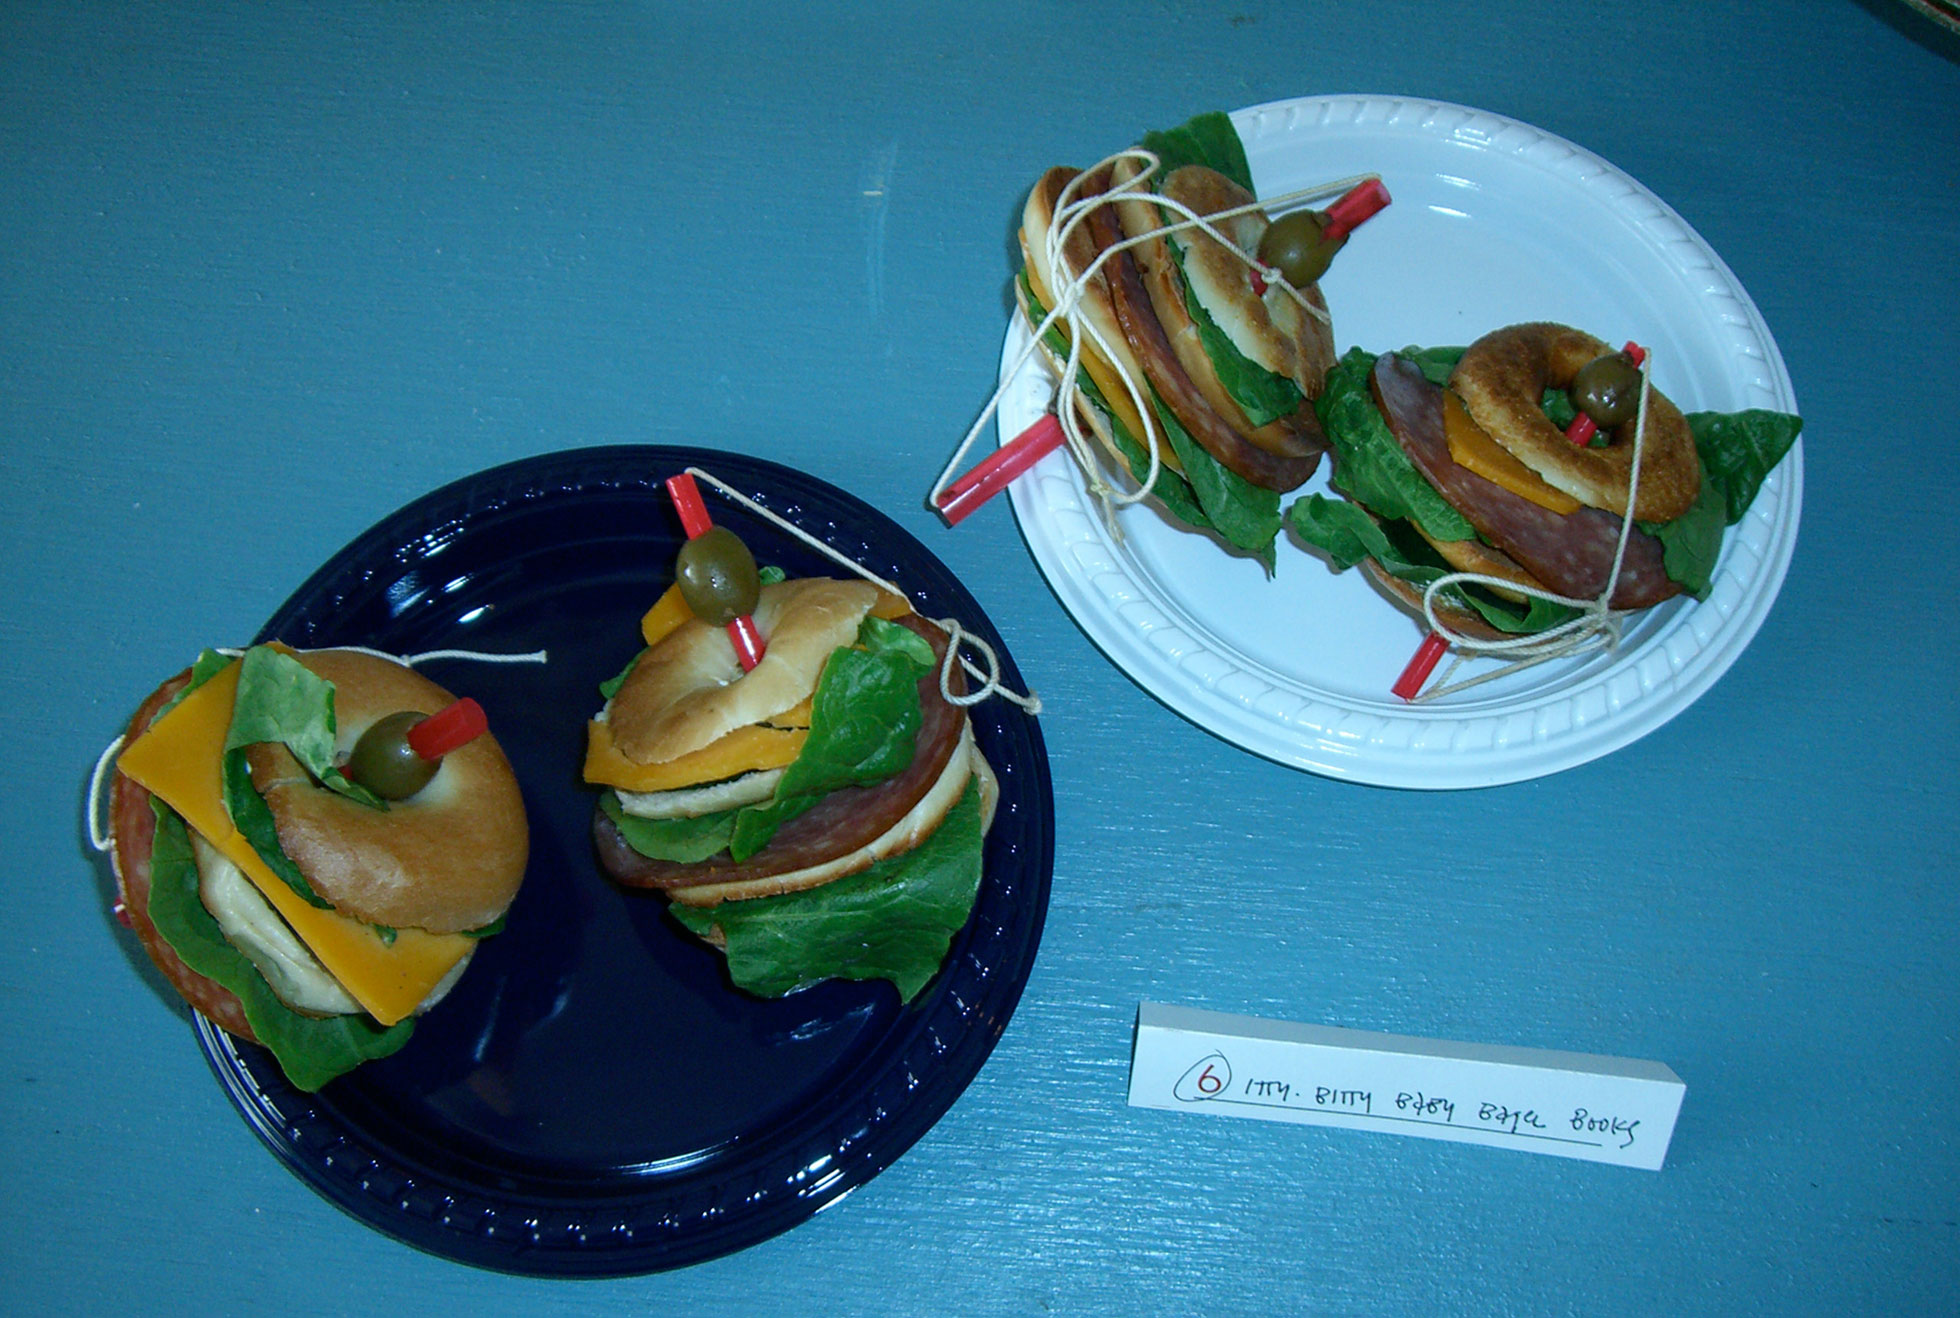 """Itty-Bitty Baby Bagel Books"" by Eve Reid; 2006 Edible Book Festival entry"